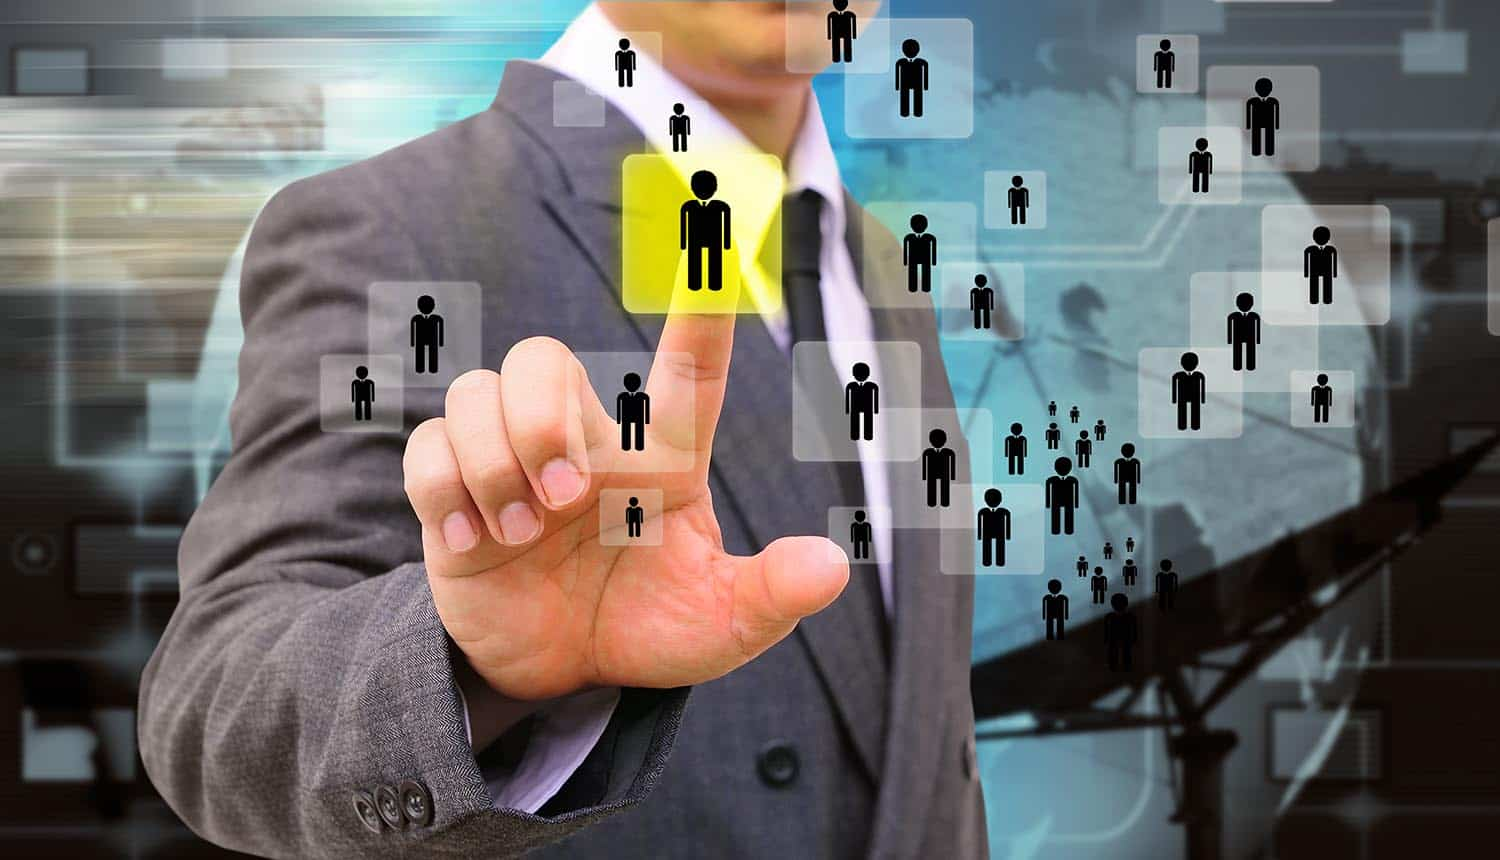 Image of man using finger to select a person in a network representing difficulty of employers finding the employee privacy sweet spot